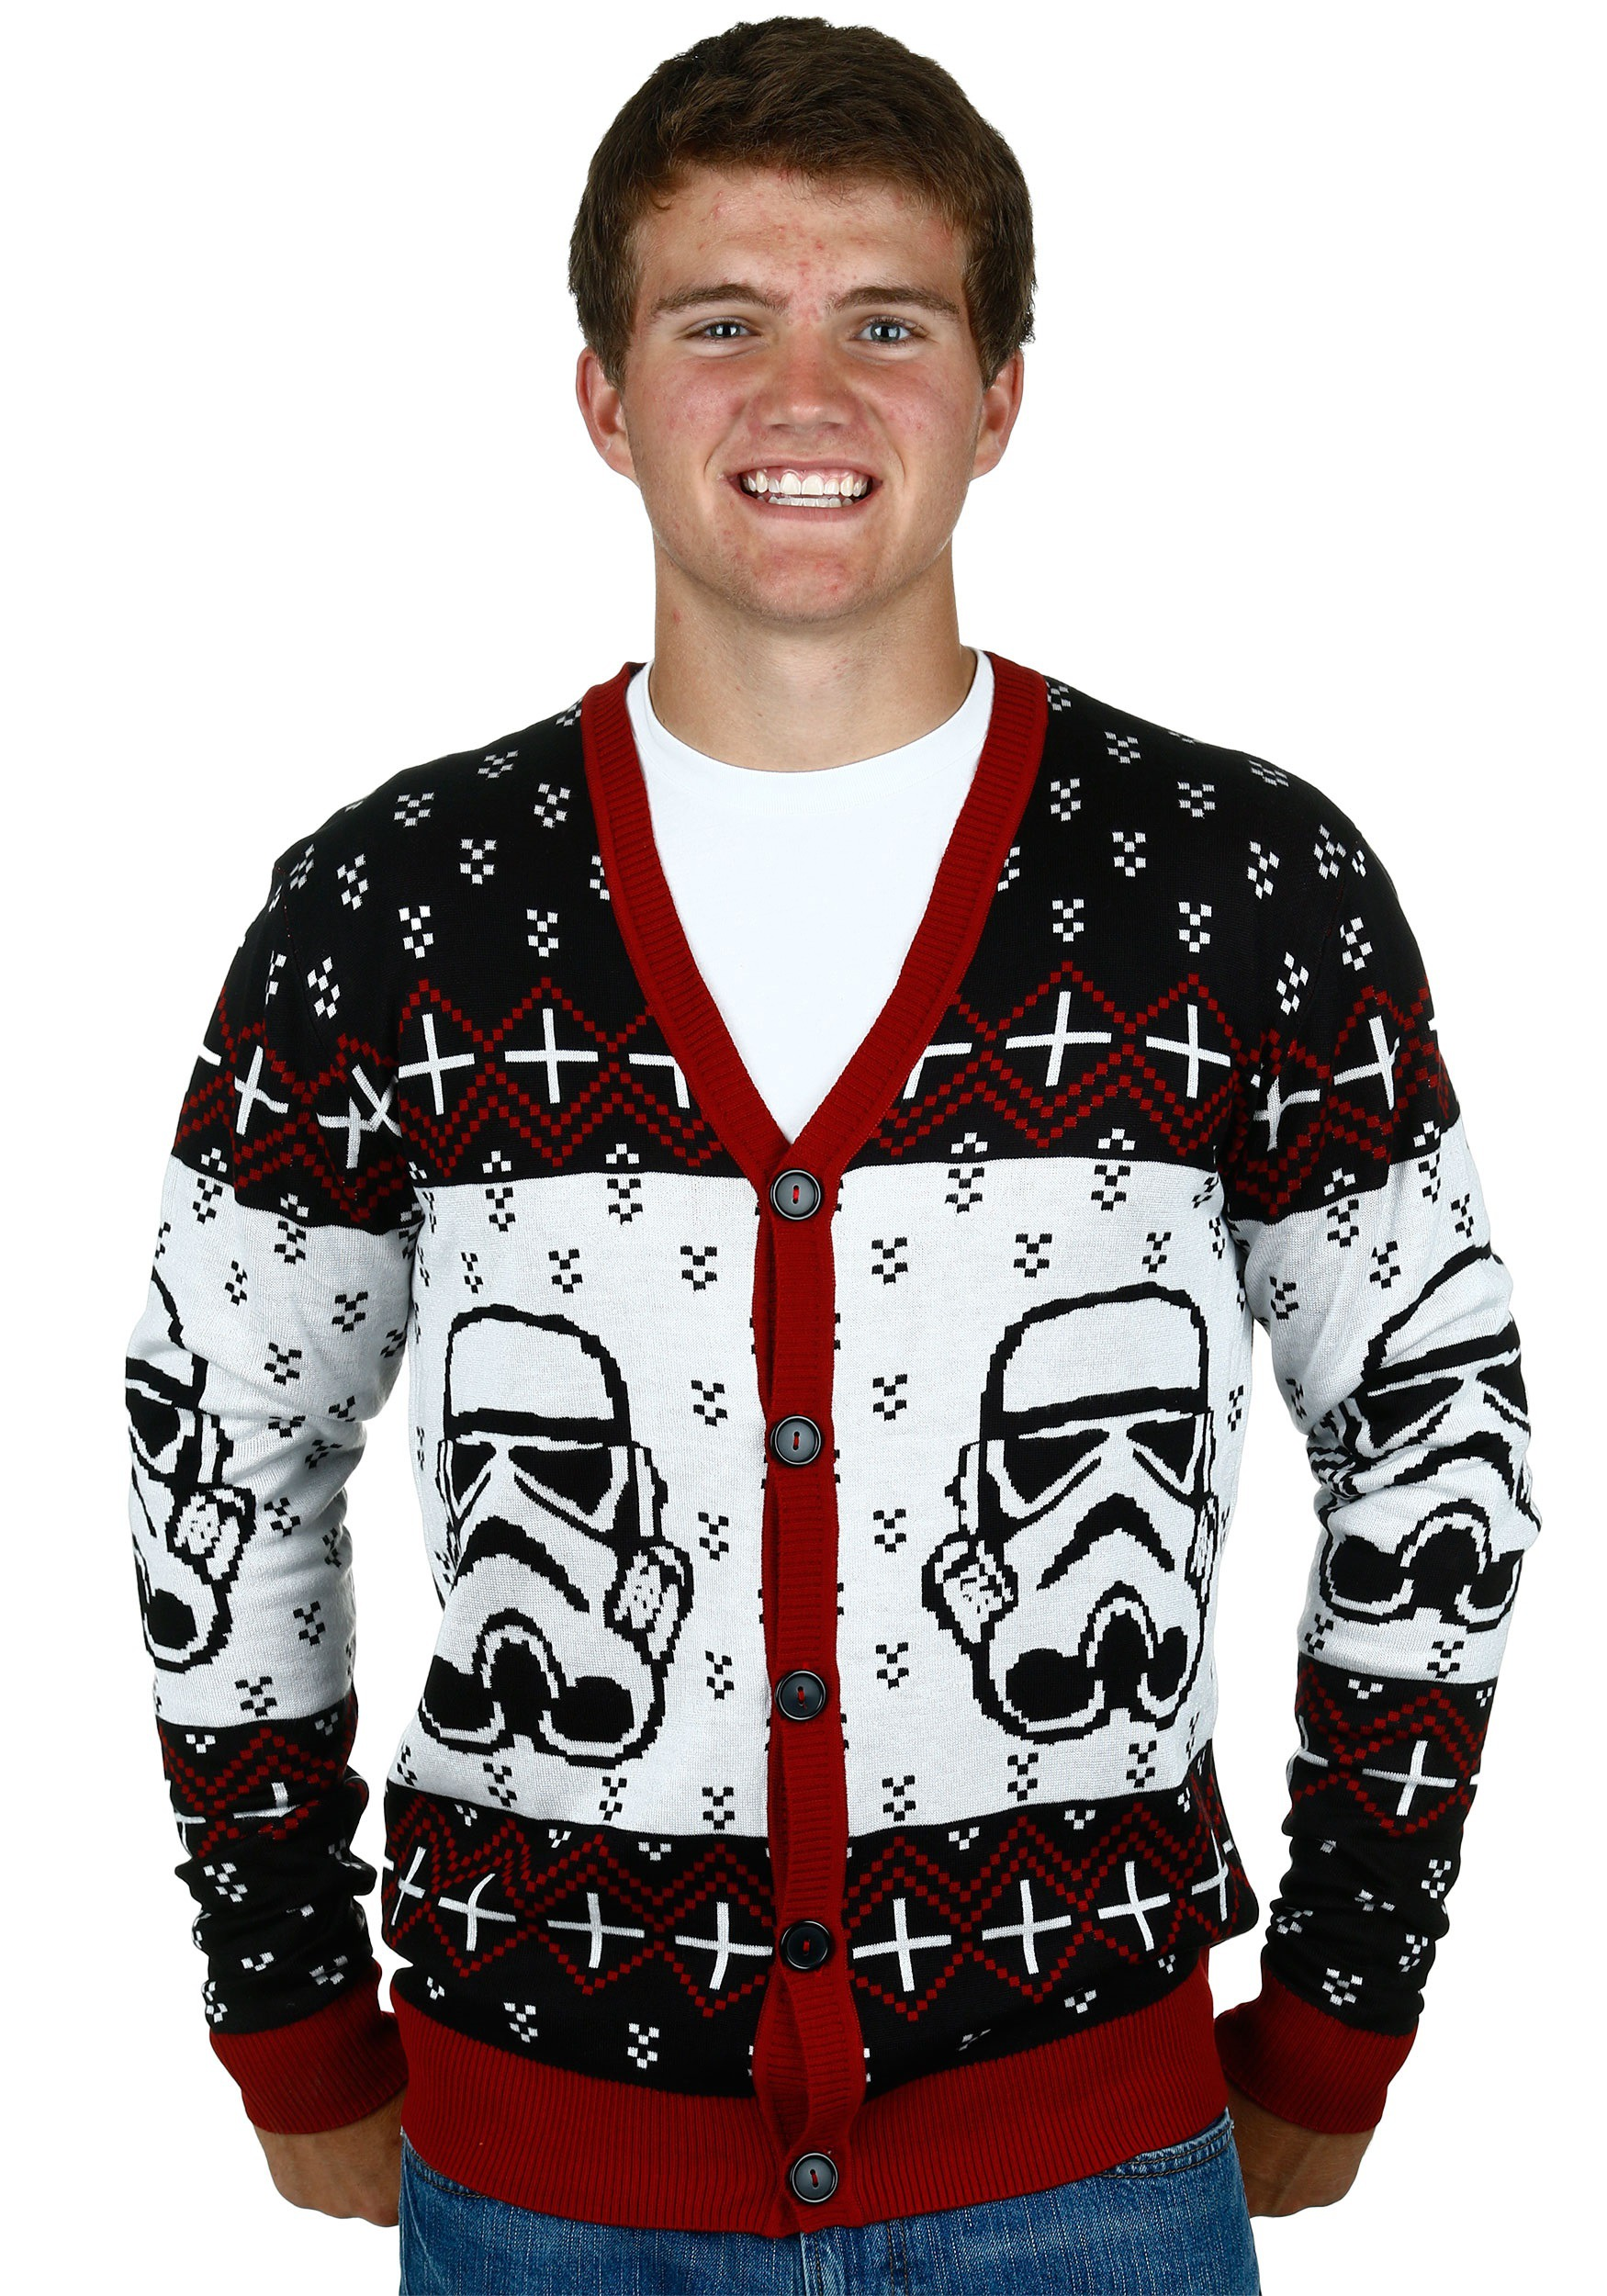 Star Wars Stormtrooper Men's Ugly Christmas Cardigan